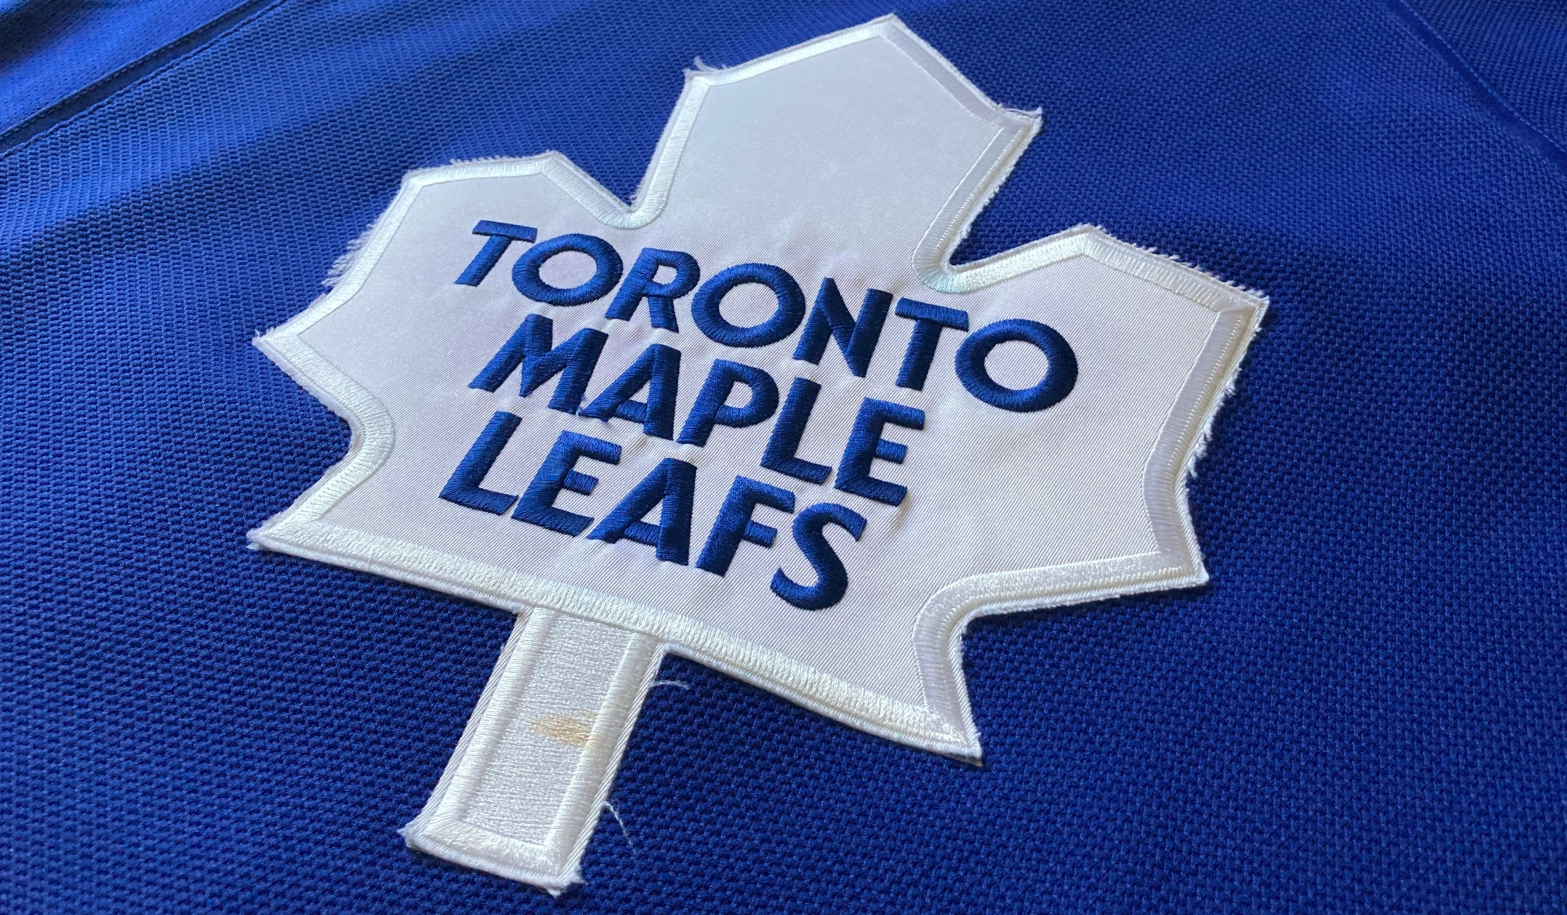 The logo of the Toronto Maple Leafs on the front of a jersey